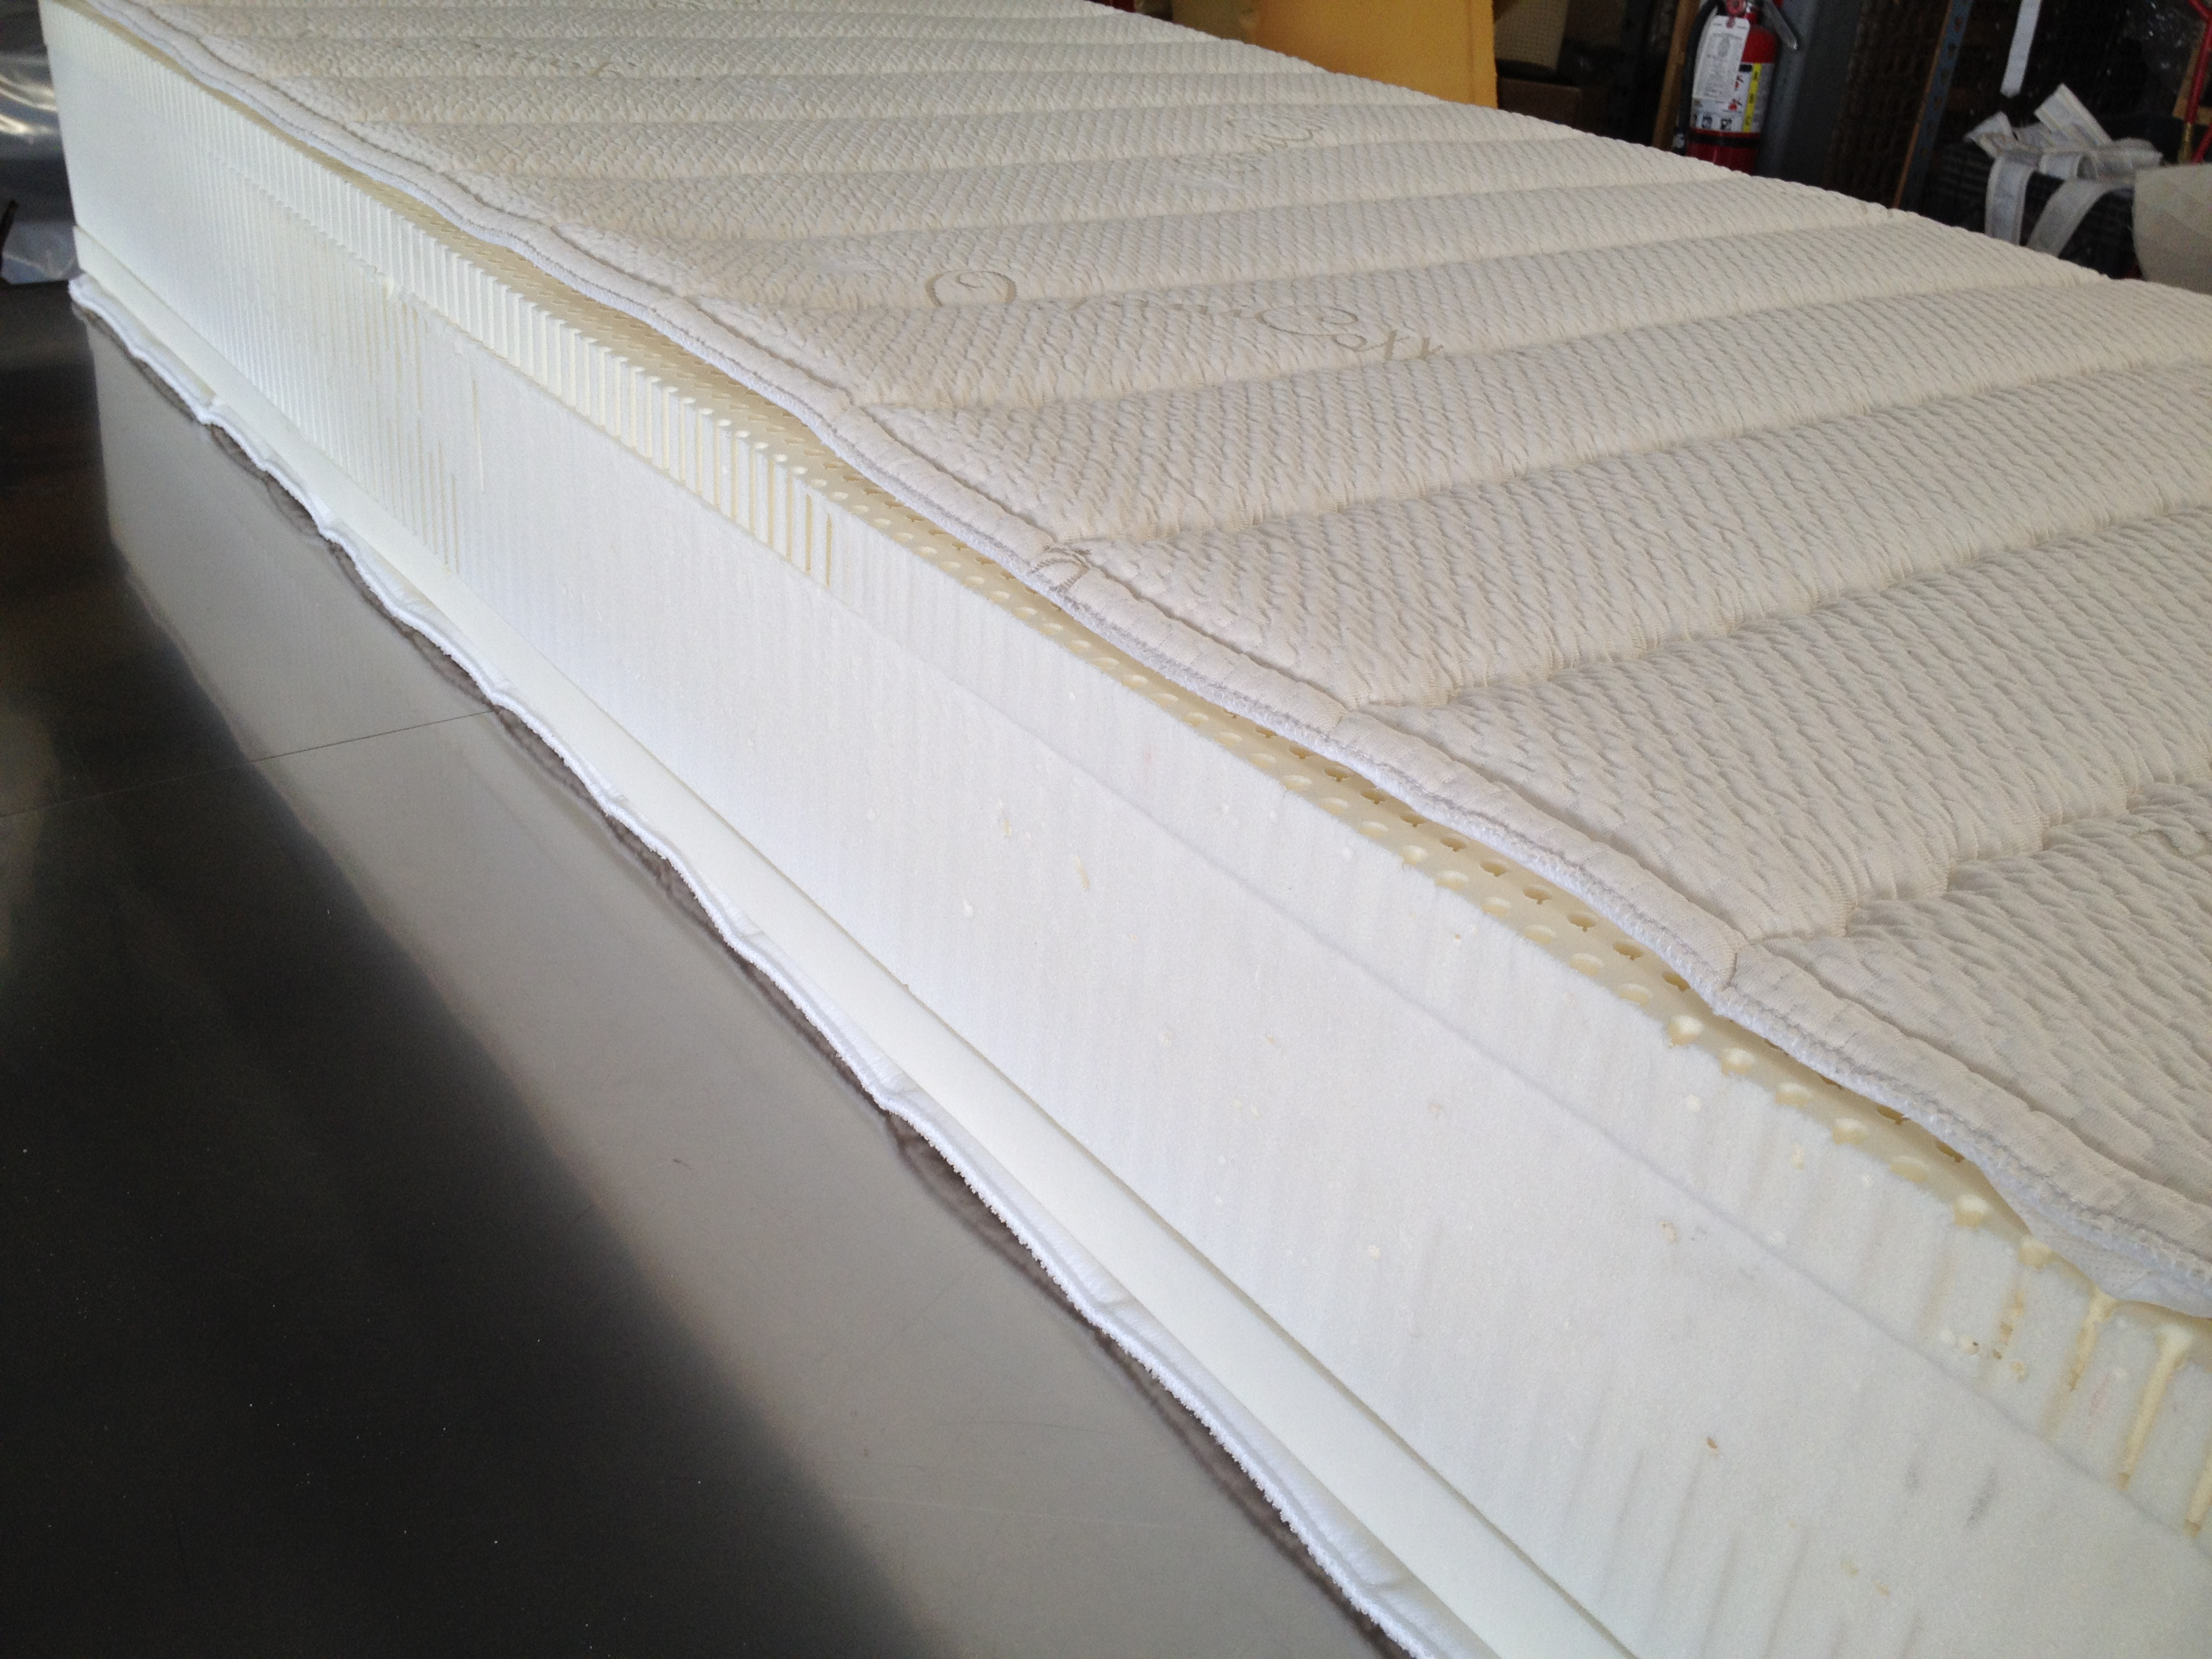 order direct from the latexpedic latex mattress factory and save up to 50 and more call the latexpedic latex mattress factory toll free